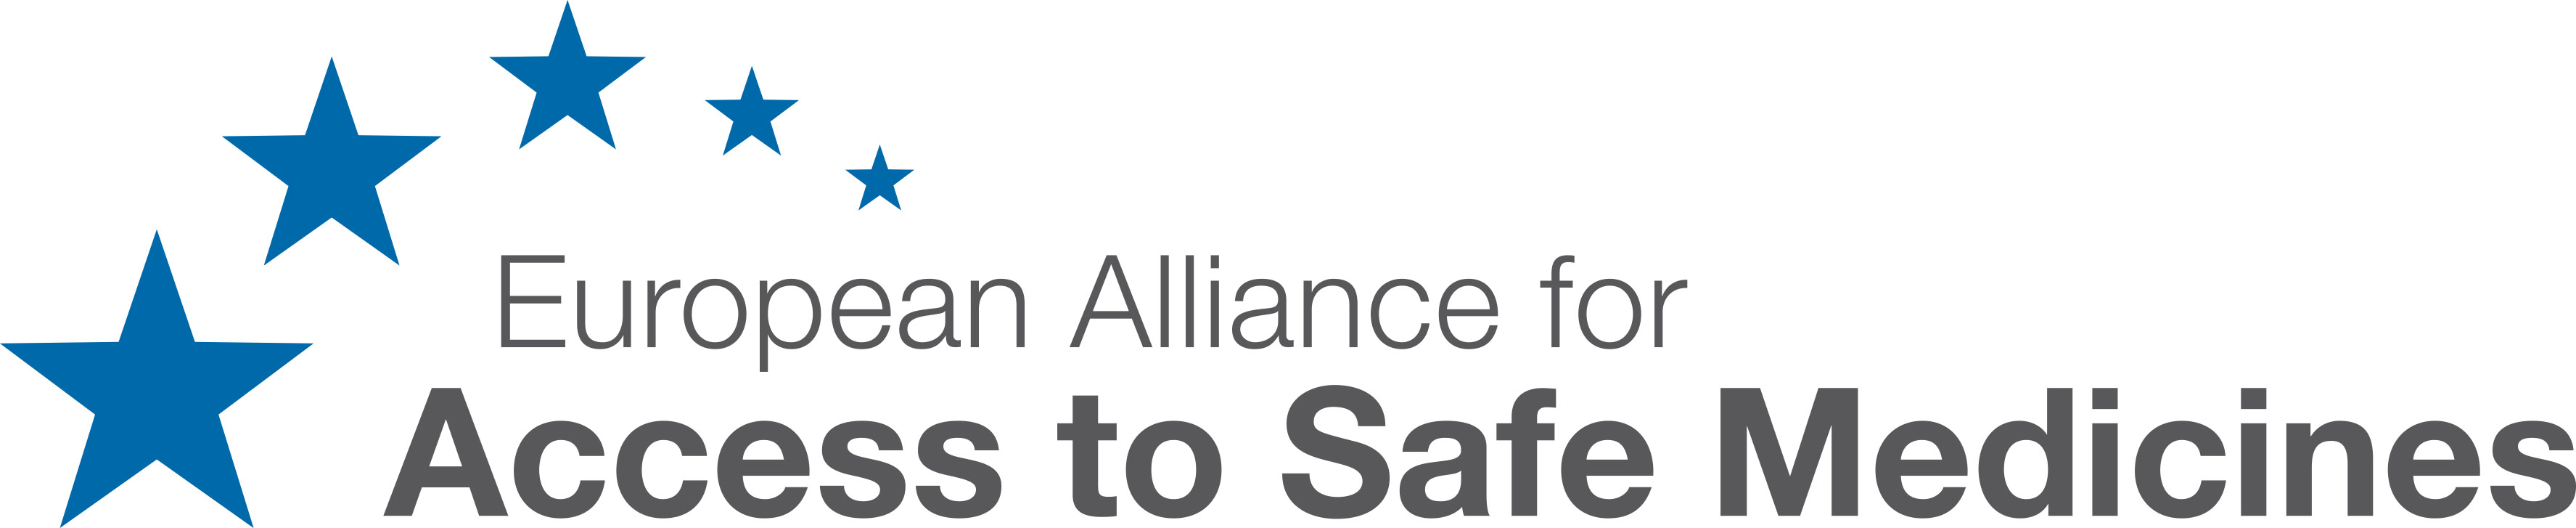 European Alliance for Access to Safe Medicines (EAASM)